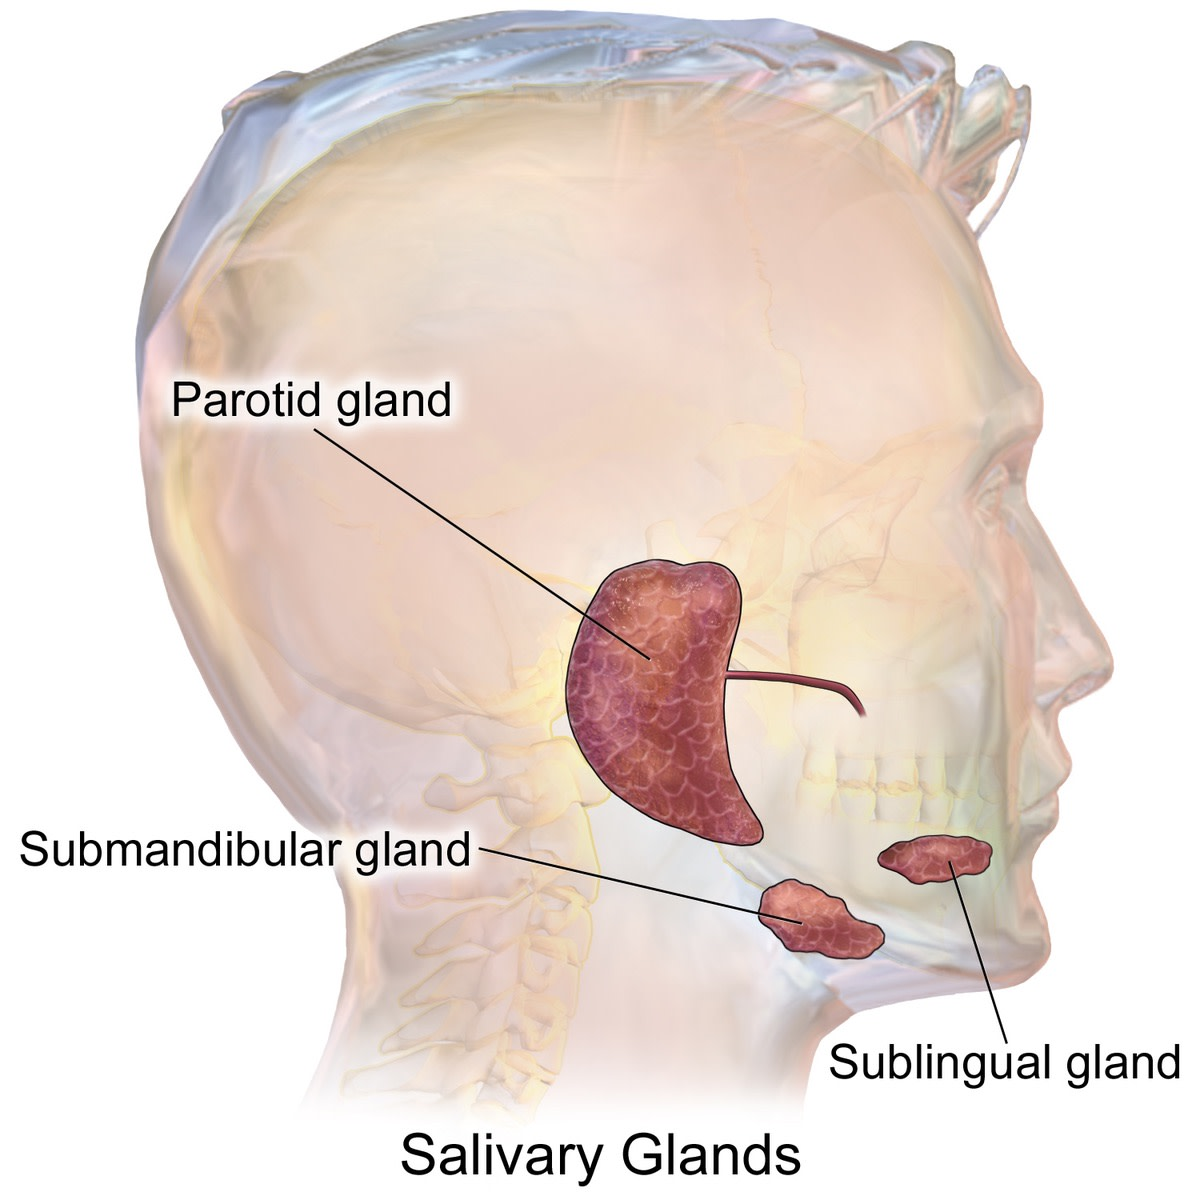 Saliva is made by the salivary glands. It's a very important substance for keeping the mouth healthy.